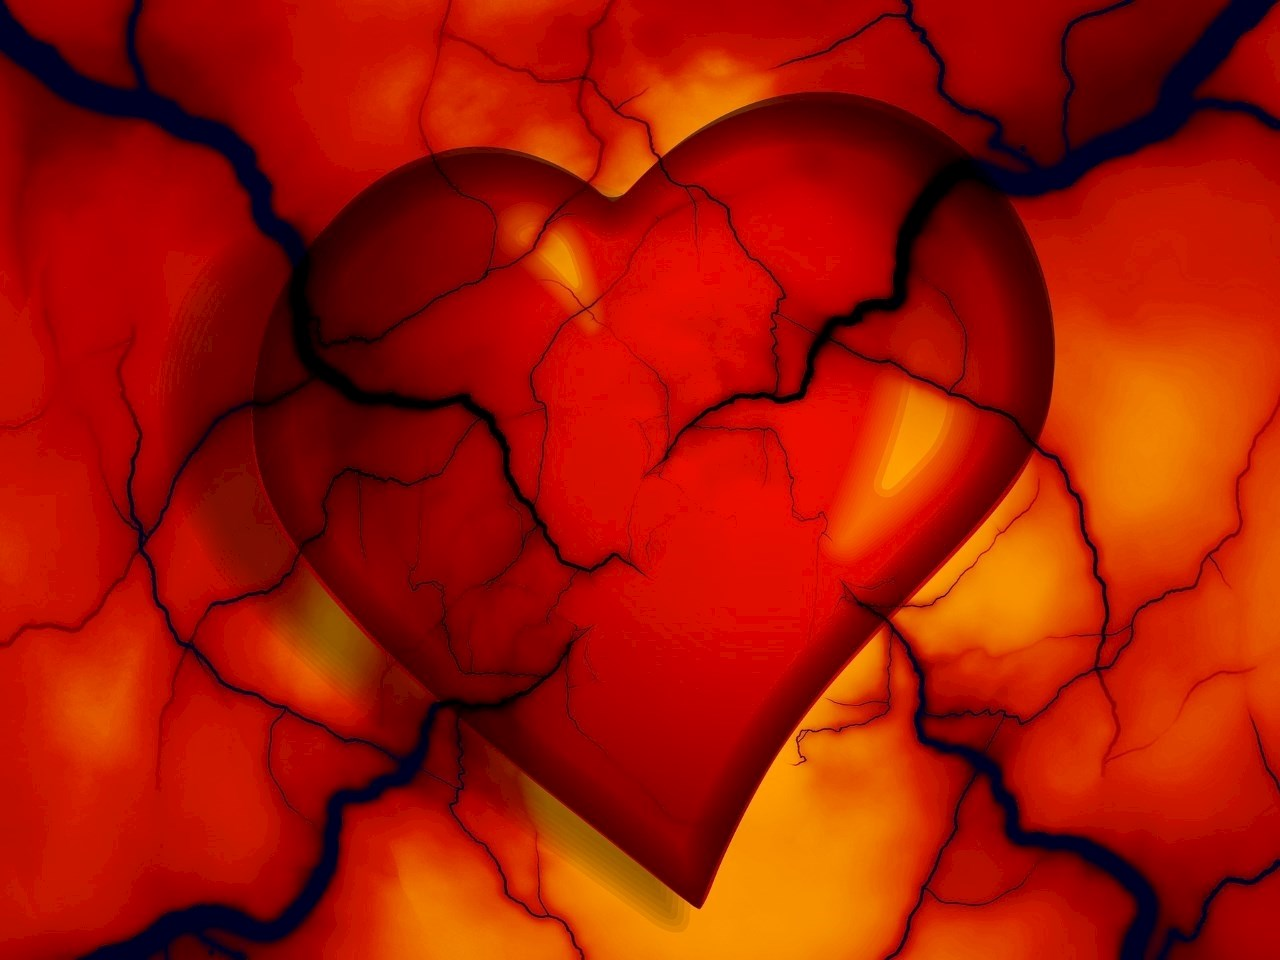 Artistic illustration of a damaged heart